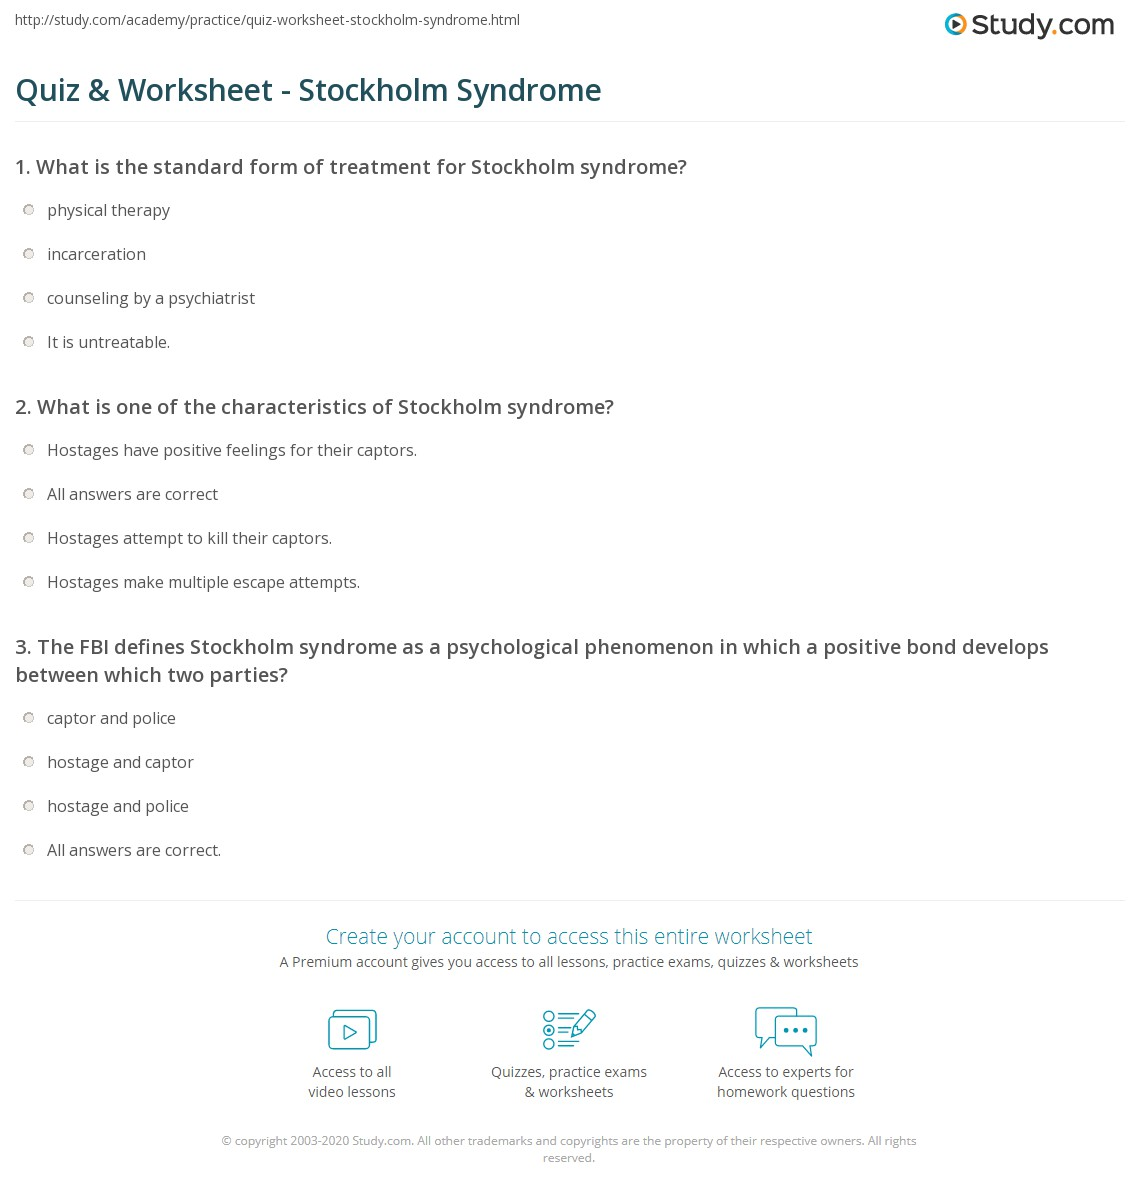 Quiz worksheet stockholm syndrome study what is one of the characteristics of stockholm syndrome falaconquin